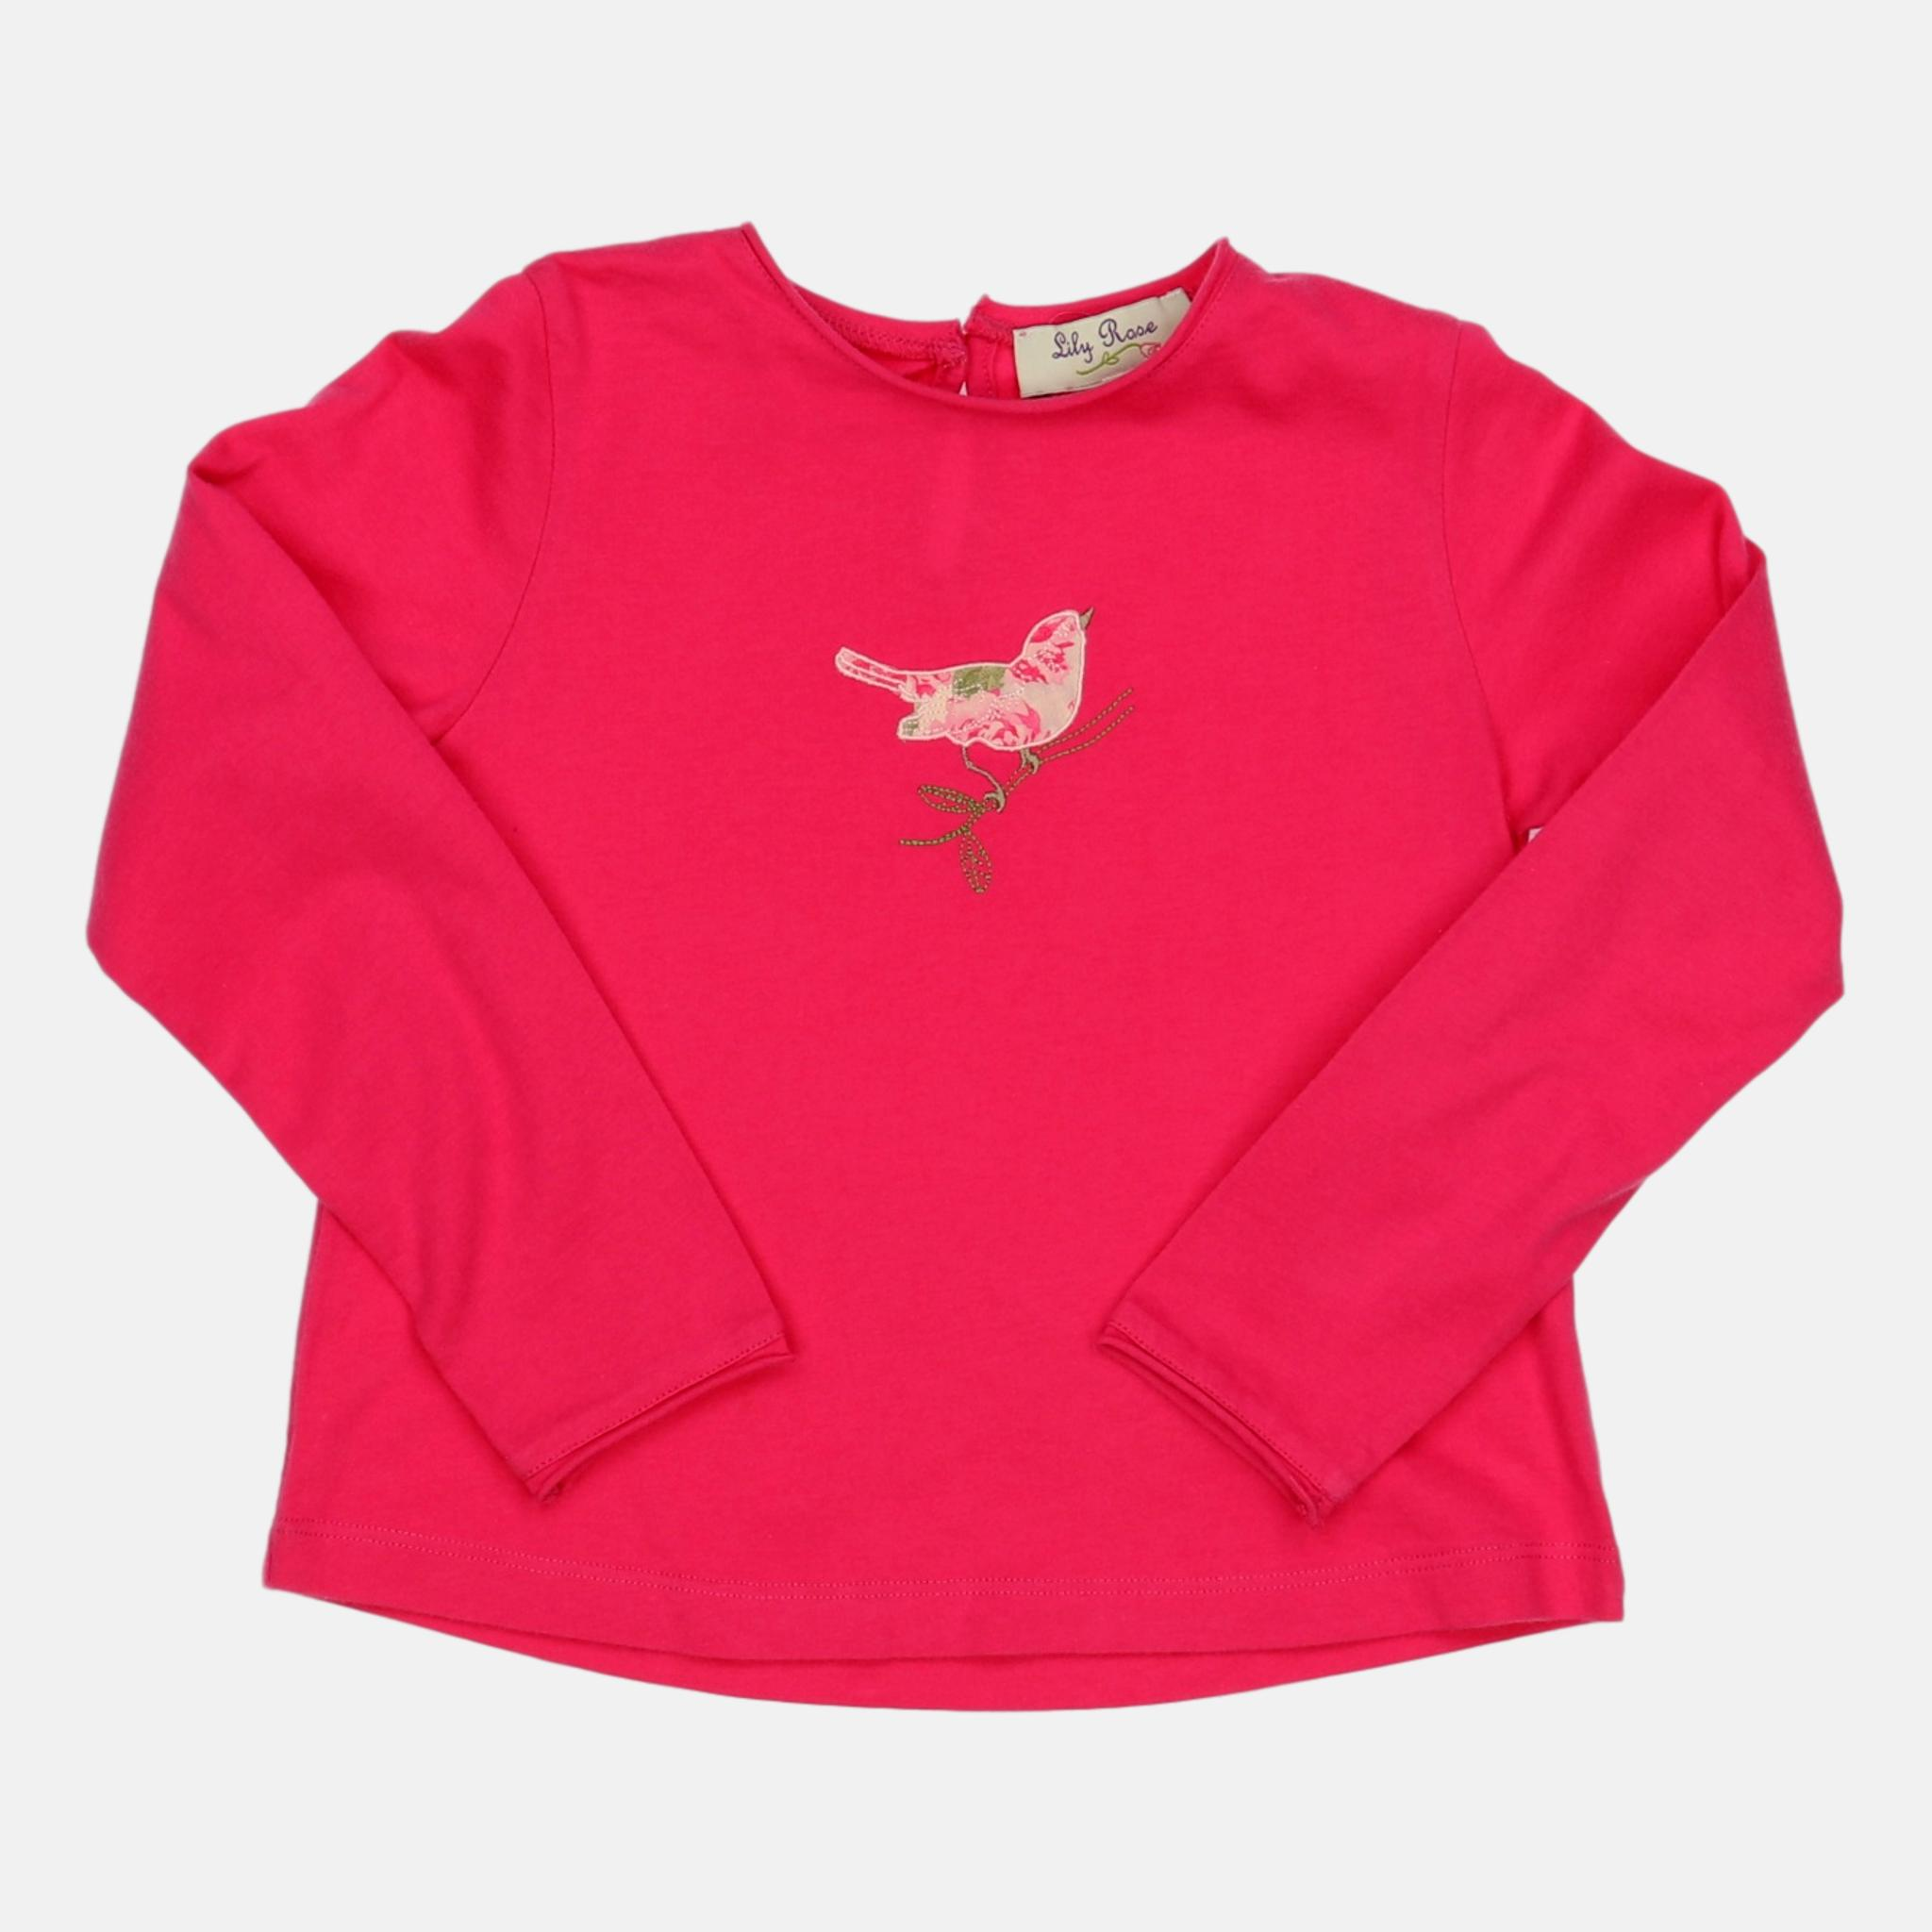 Long Sleeve T-Shirt, 4-5 years